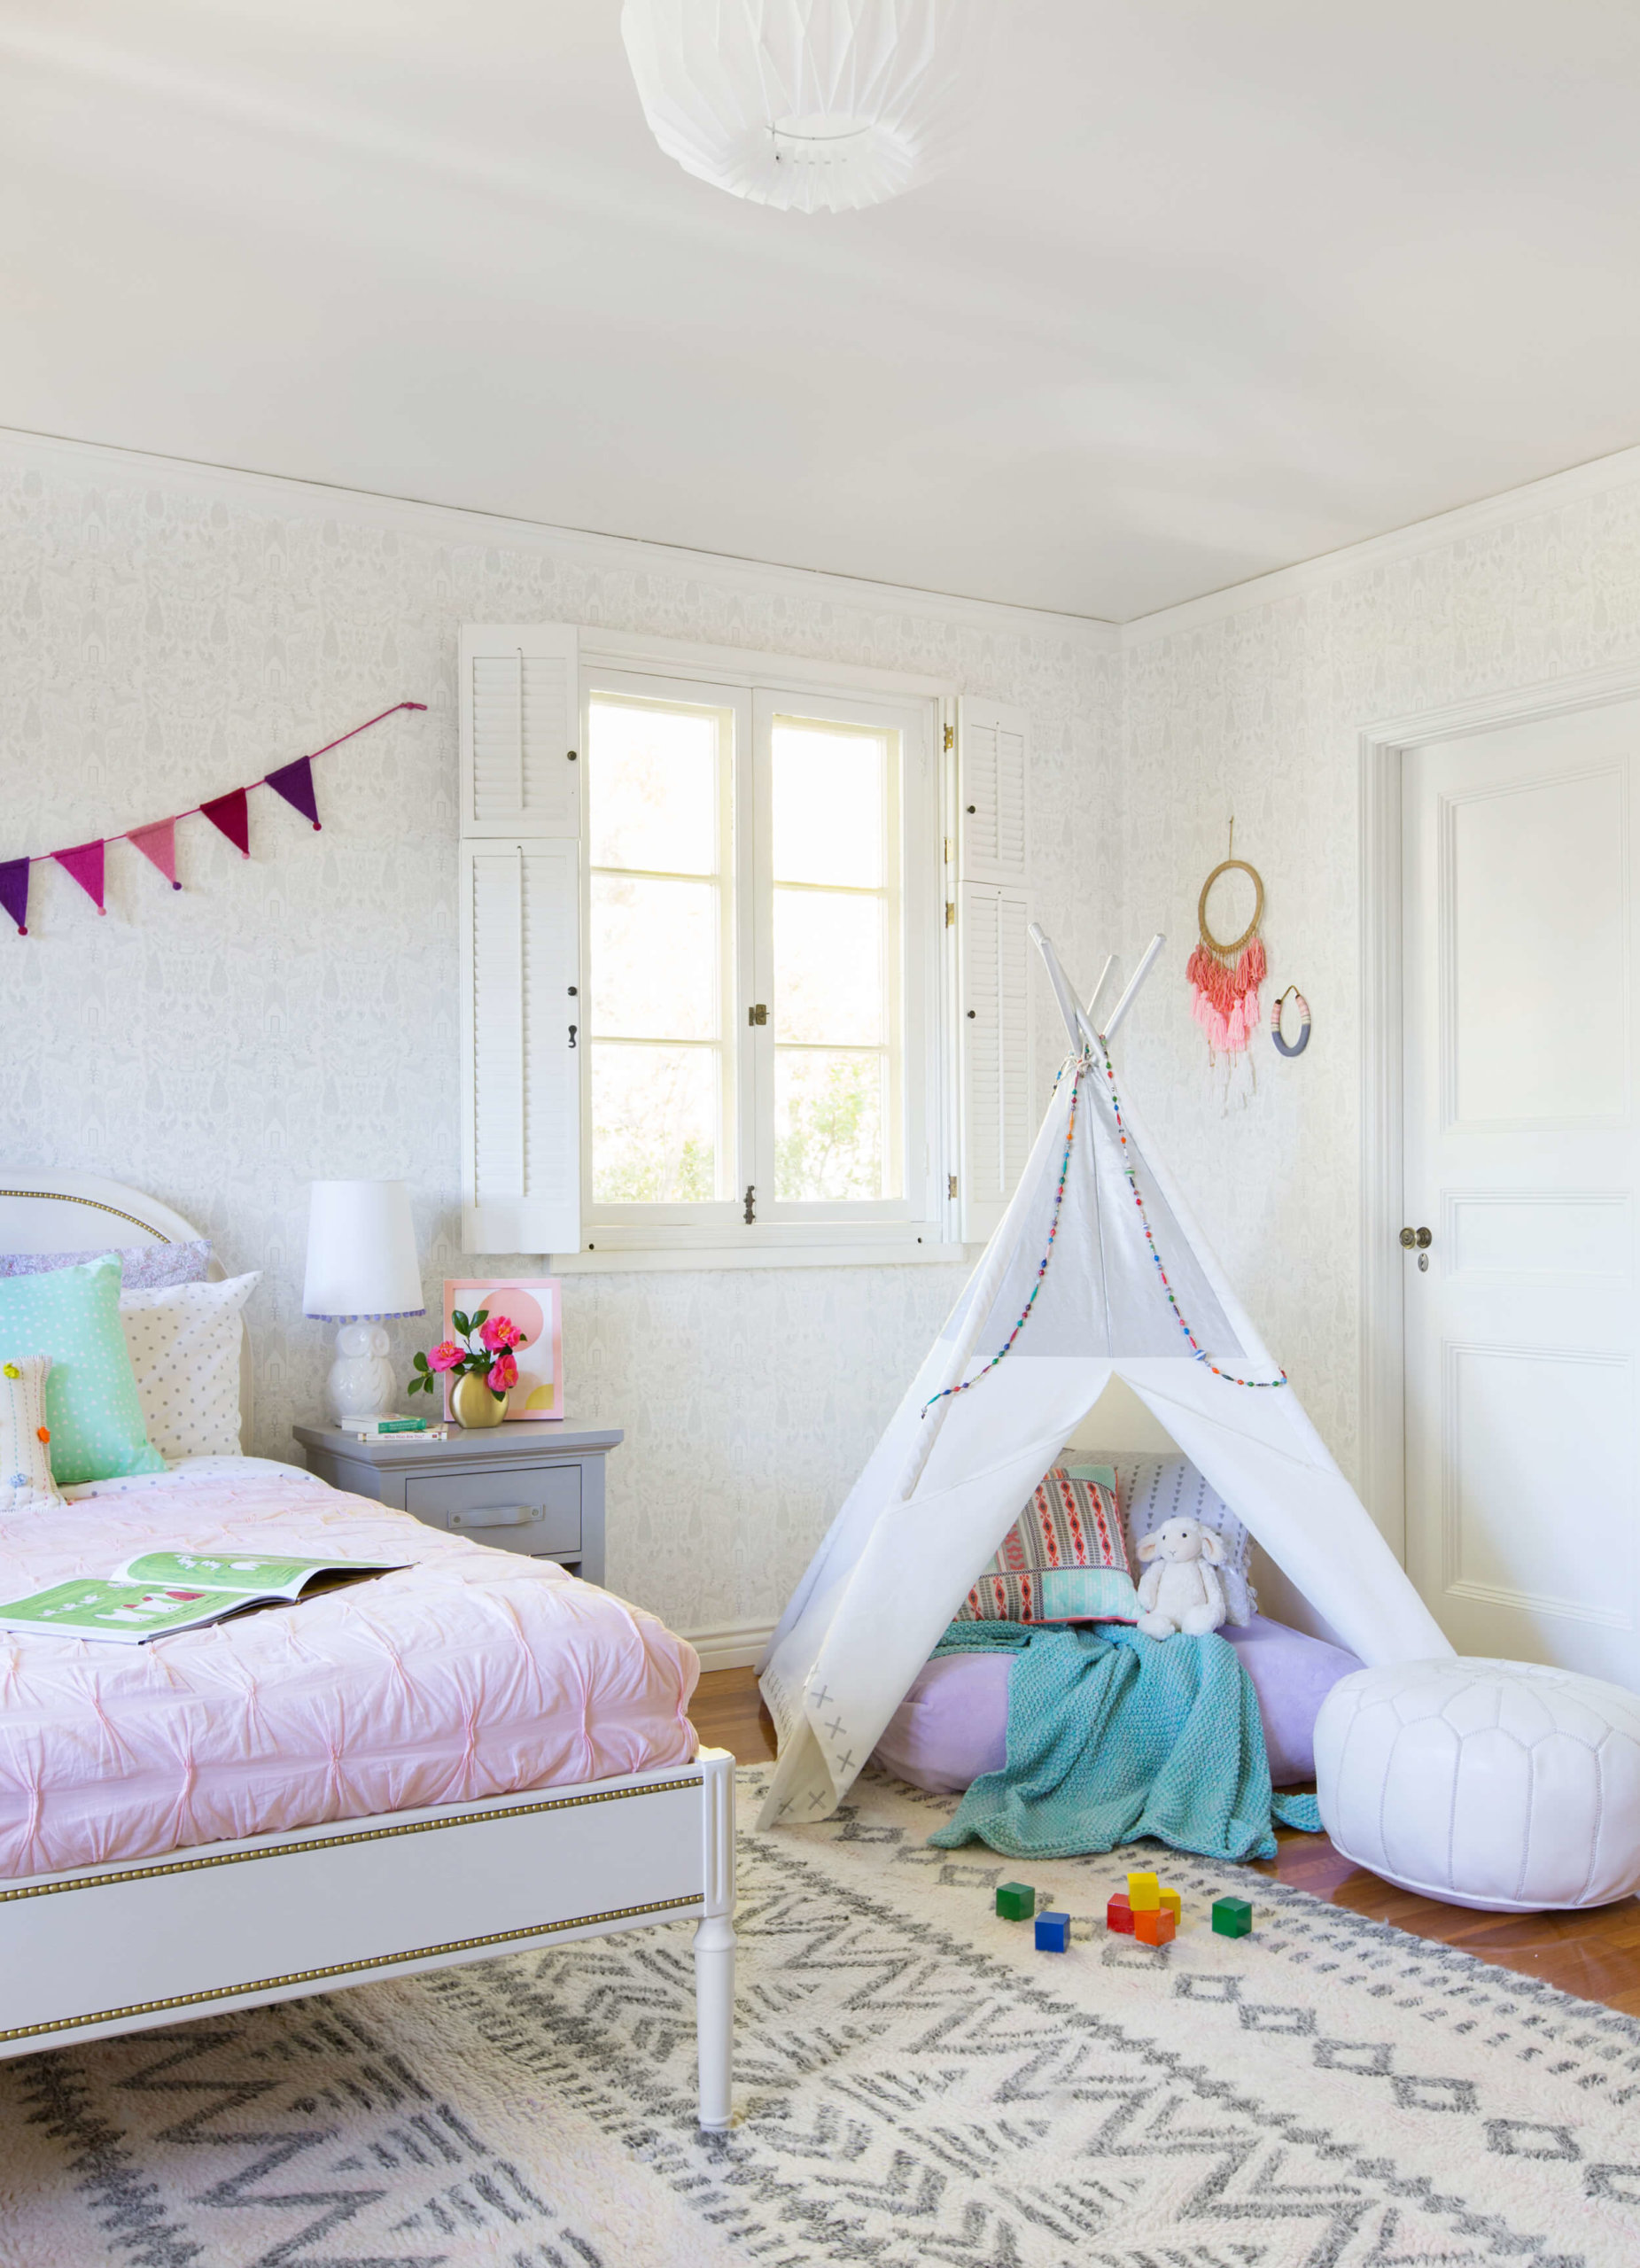 Small wall hangings in a girl's bedroom